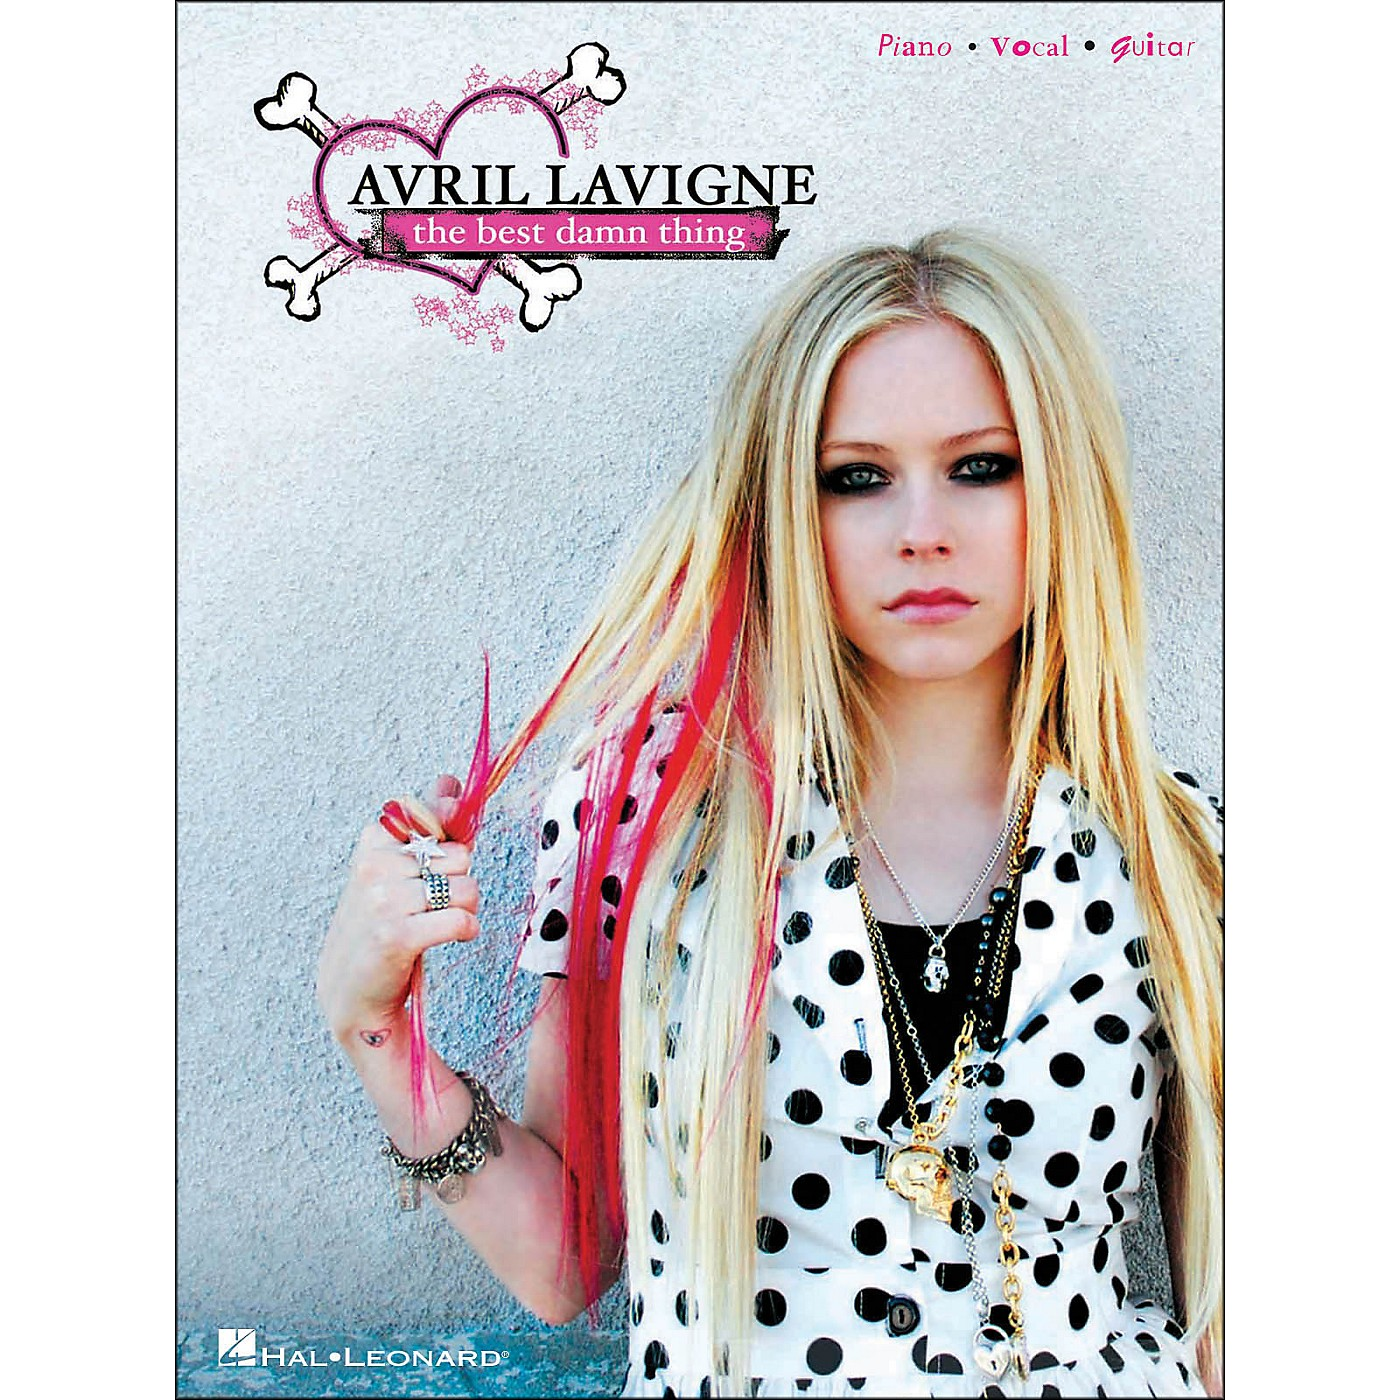 Hal Leonard Avril Lavigne The Best Damn Thing arranged for piano, vocal, and guitar (P/V/G) thumbnail